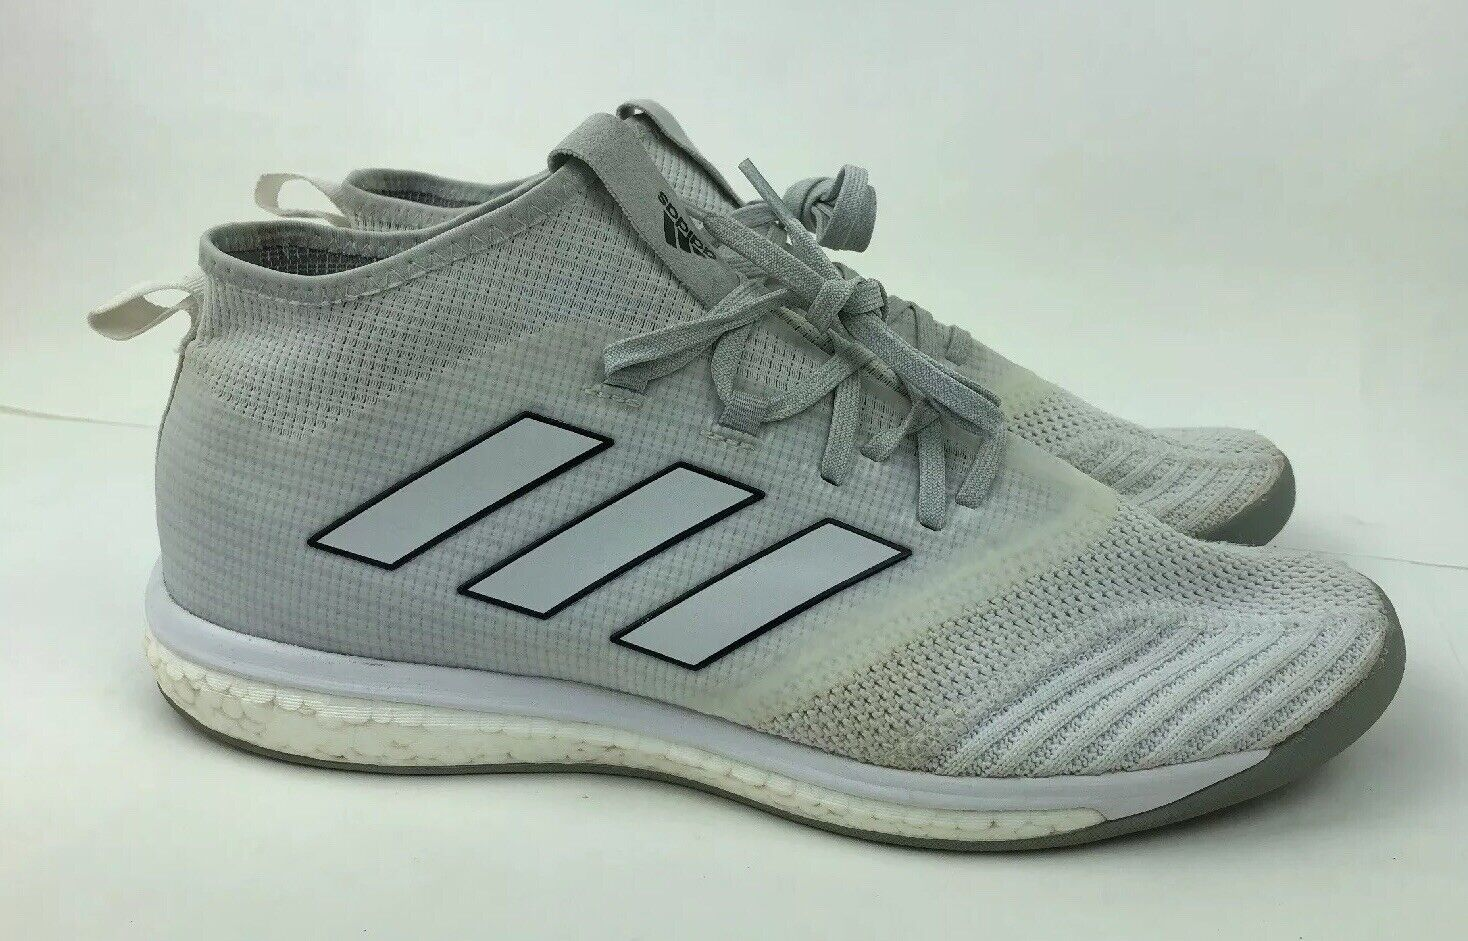 Adidas boost shoes White Athletic Running shoes FR 46 Mens US Size 11.5